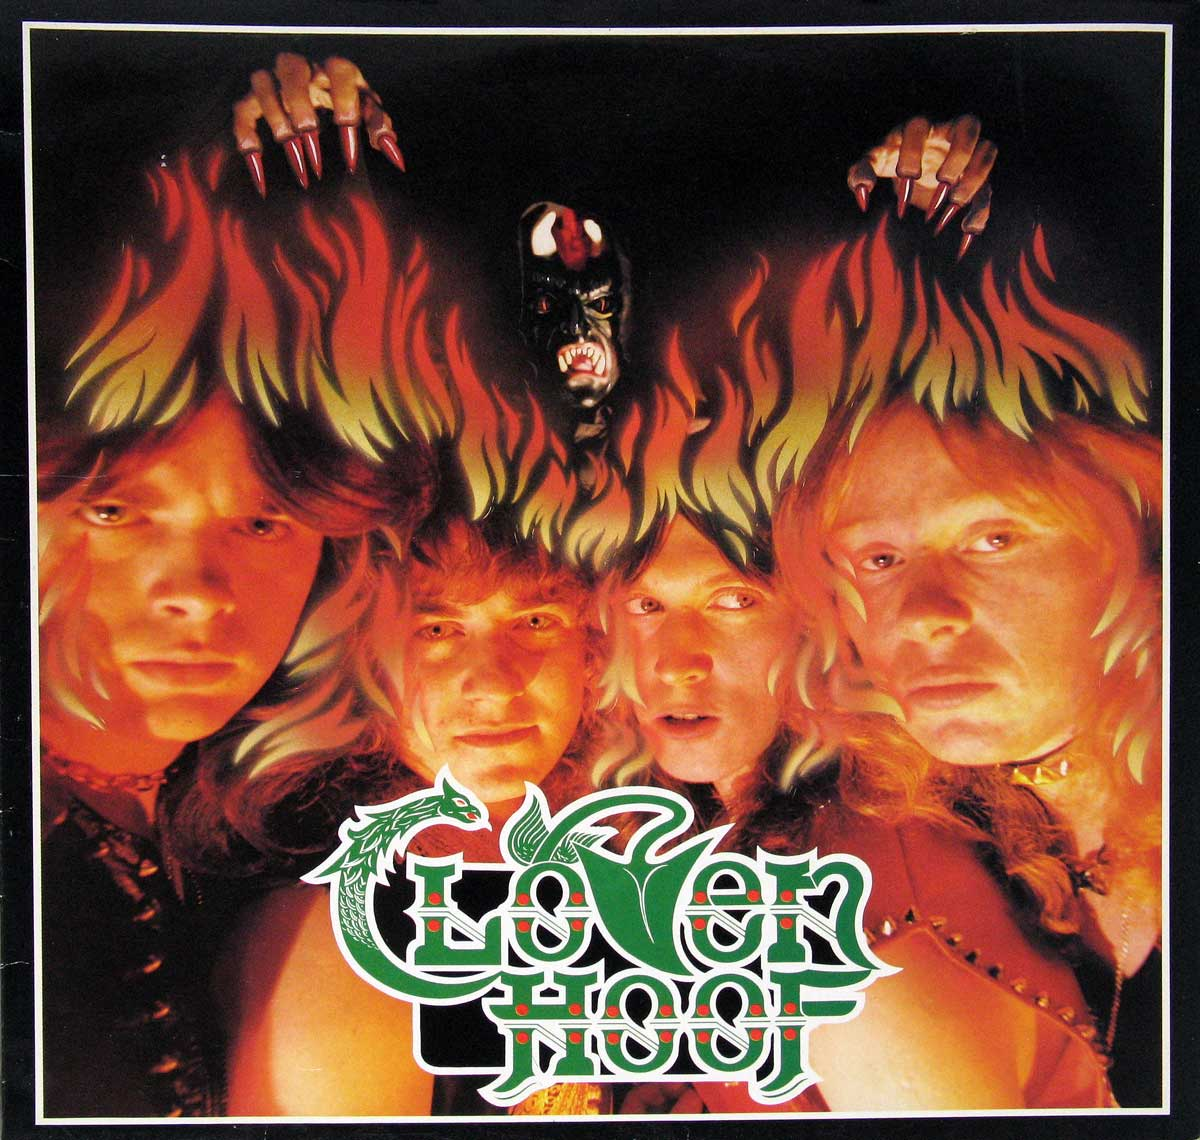 large photo of the album front cover of: CLOVEN HOOF - Self-Titled